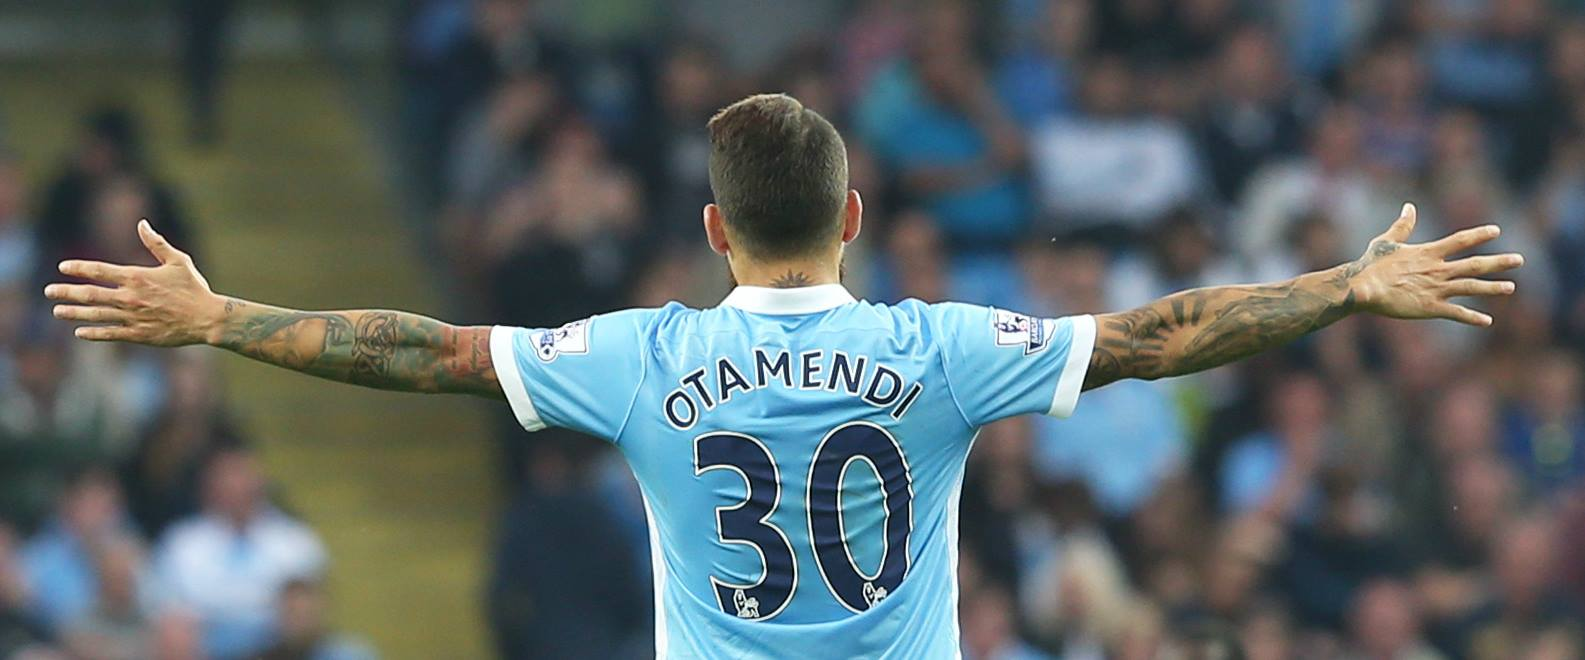 Yes to NO - Nicolas Otamendi is rapidly establishing himself as one of the finest defenders in the Premier League. Courtesy@MCFC